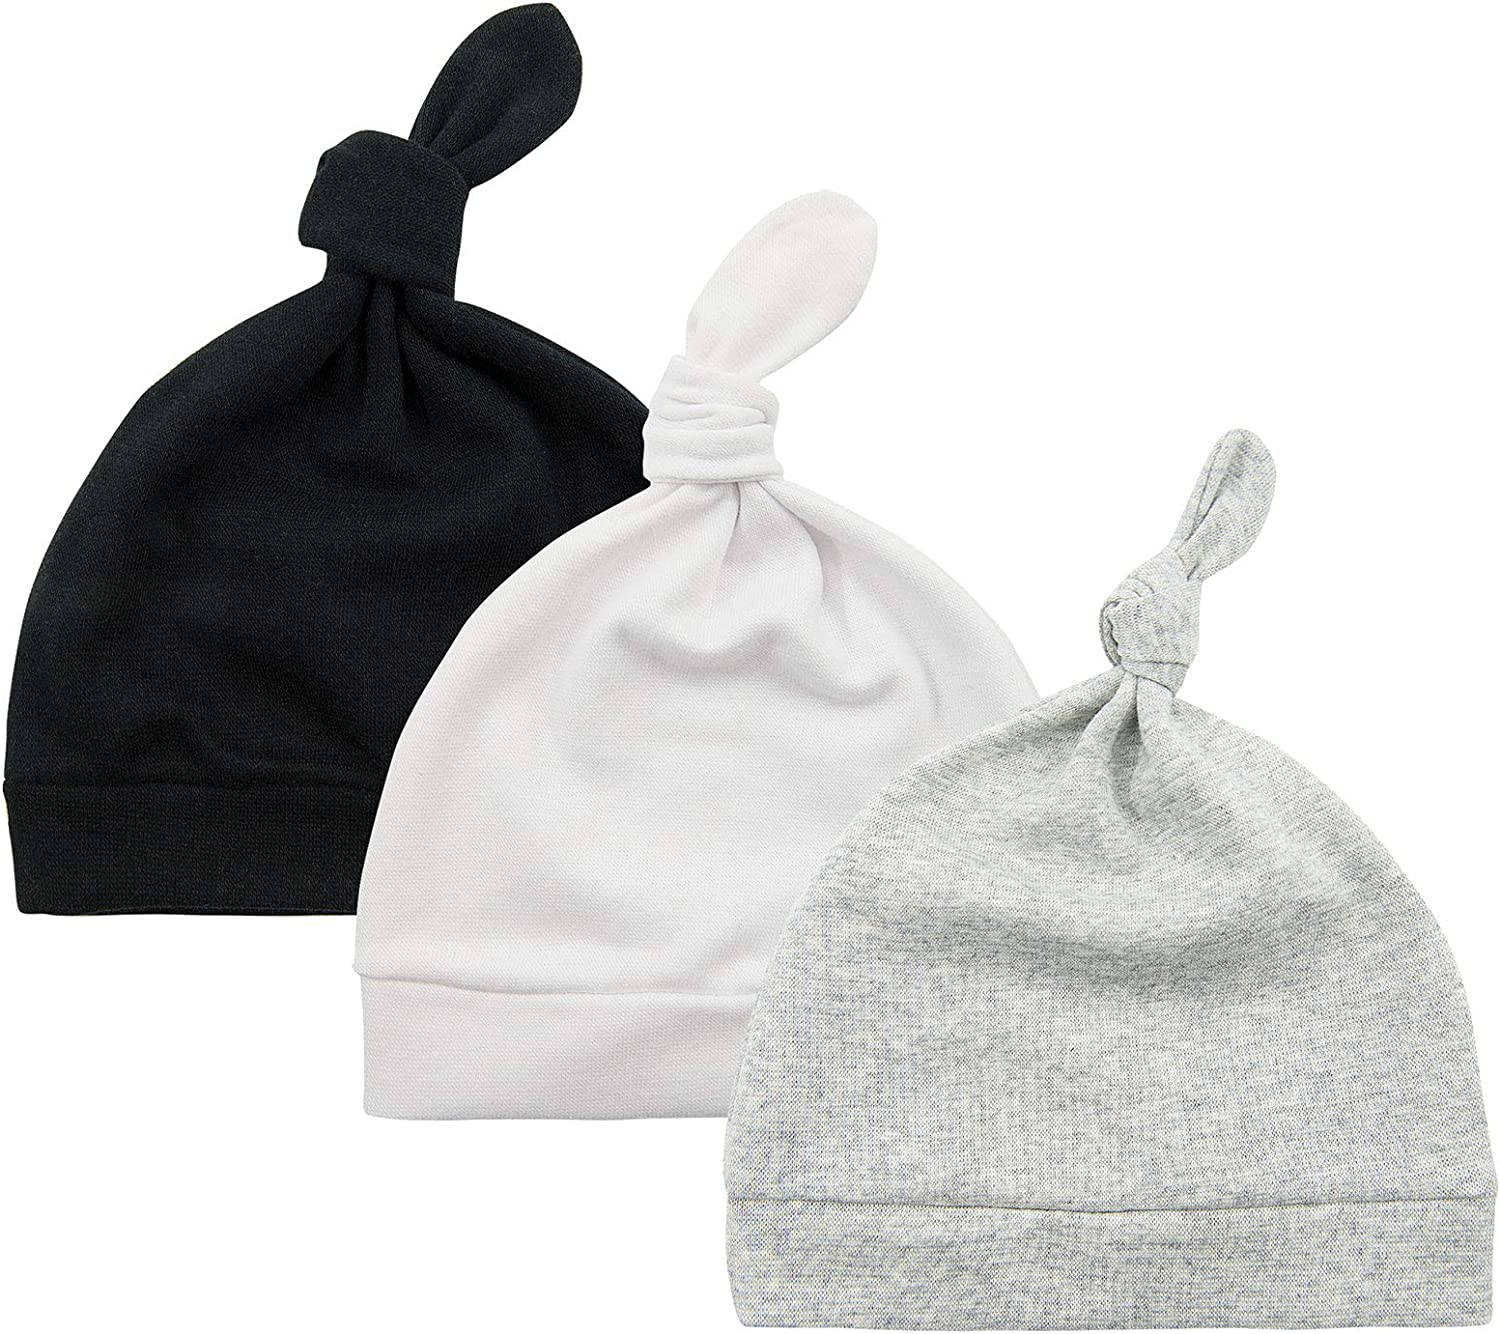 Baby Hats Newborn 0-6 Months New Born Beanie Knot Boy and Girl Unisex Hat Gifts for Hospital Infant Caps